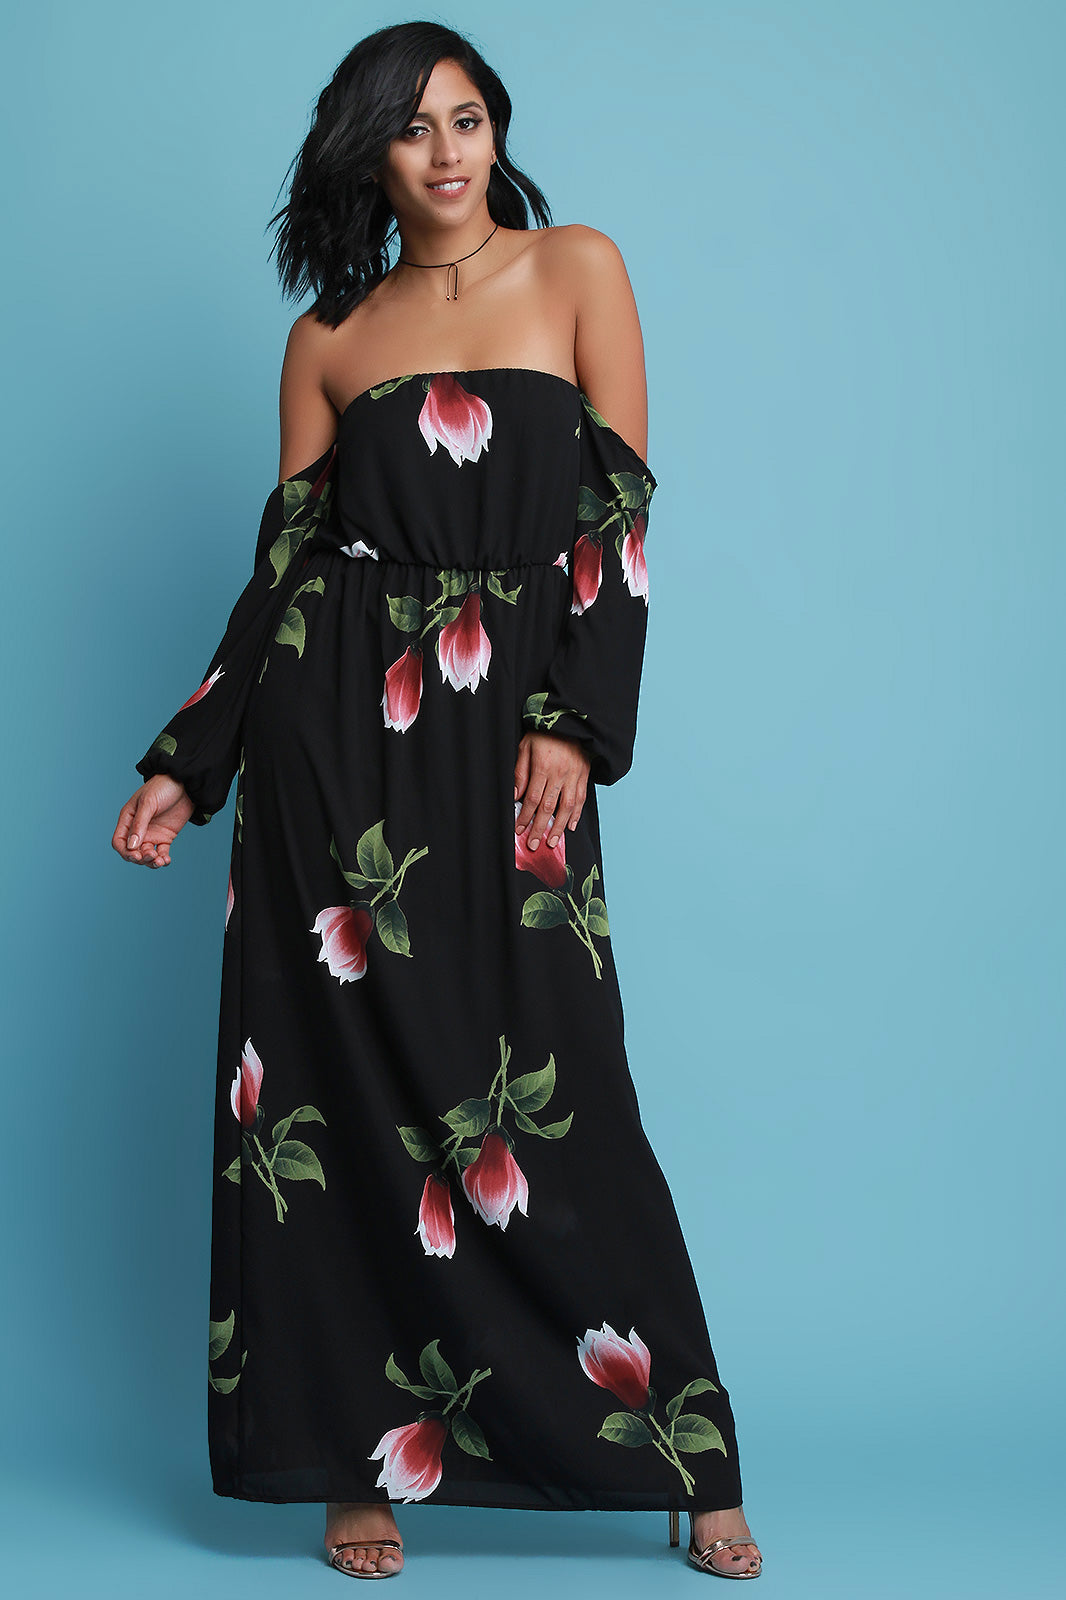 Strapless Floral Print Long Sleeve Maxi Dress